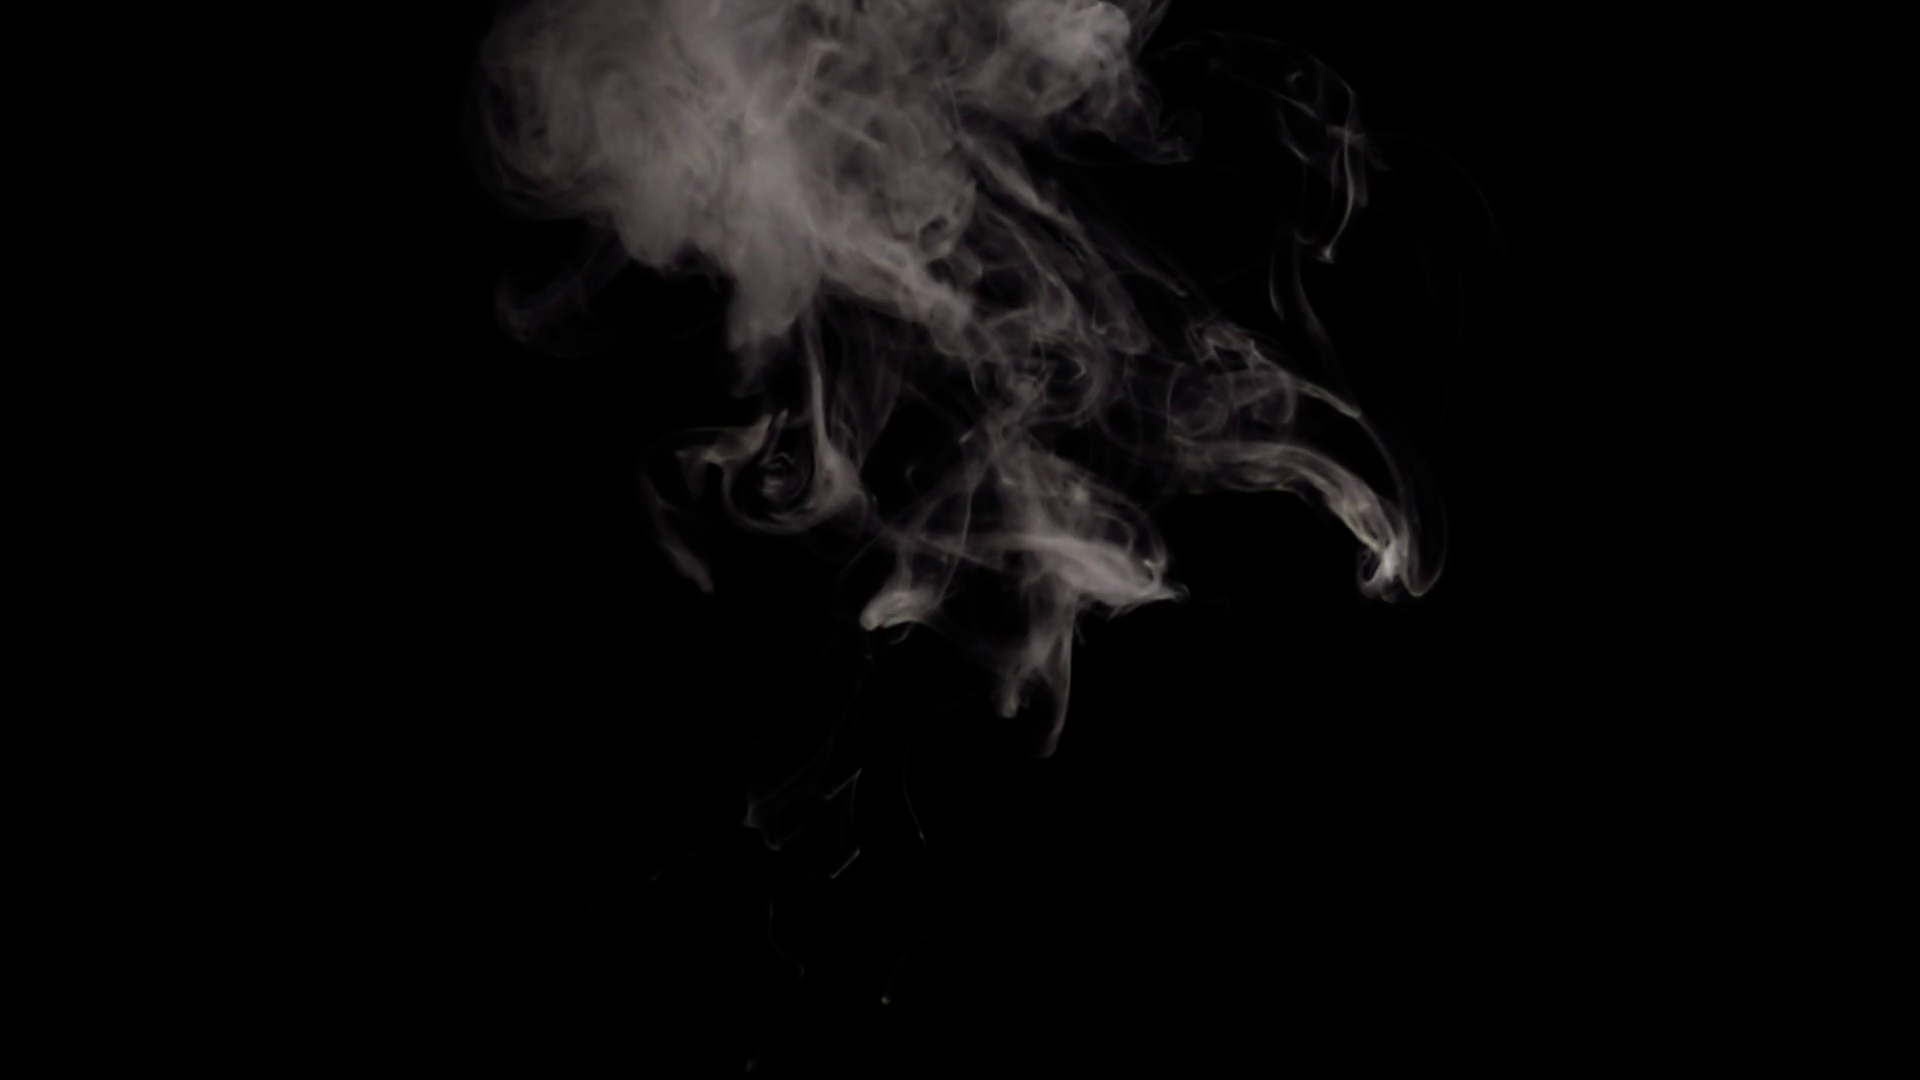 Alpha Channel, Png, White Smoke On Black Background Stock Video Footage.